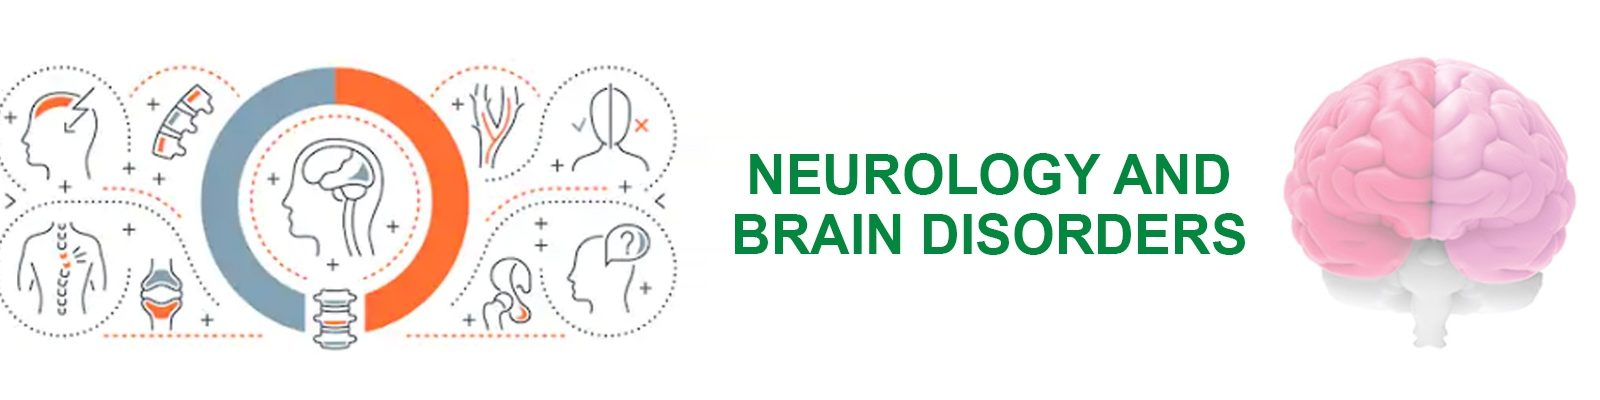 NEUROLOGY_BANNER_1